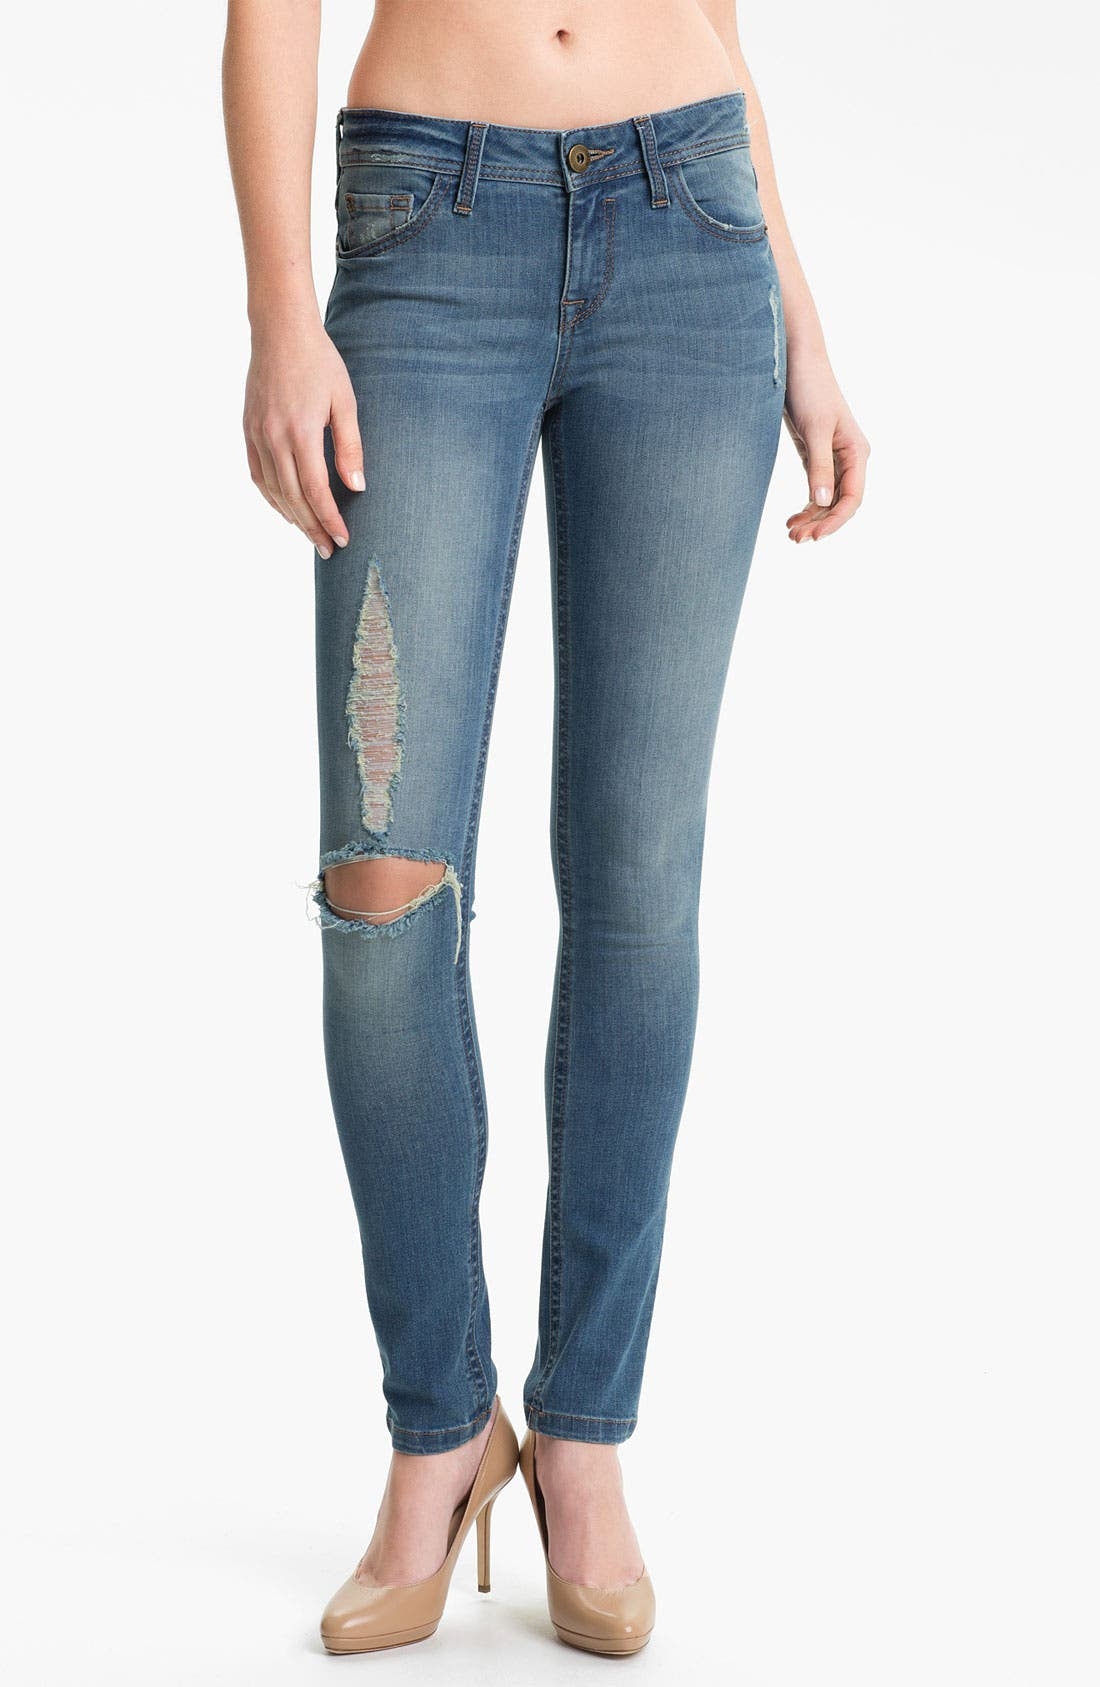 Main Image - DL1961 'Amanda' X-Fit Stretch Destroyed Denim Skinny Jeans (Mayhem)